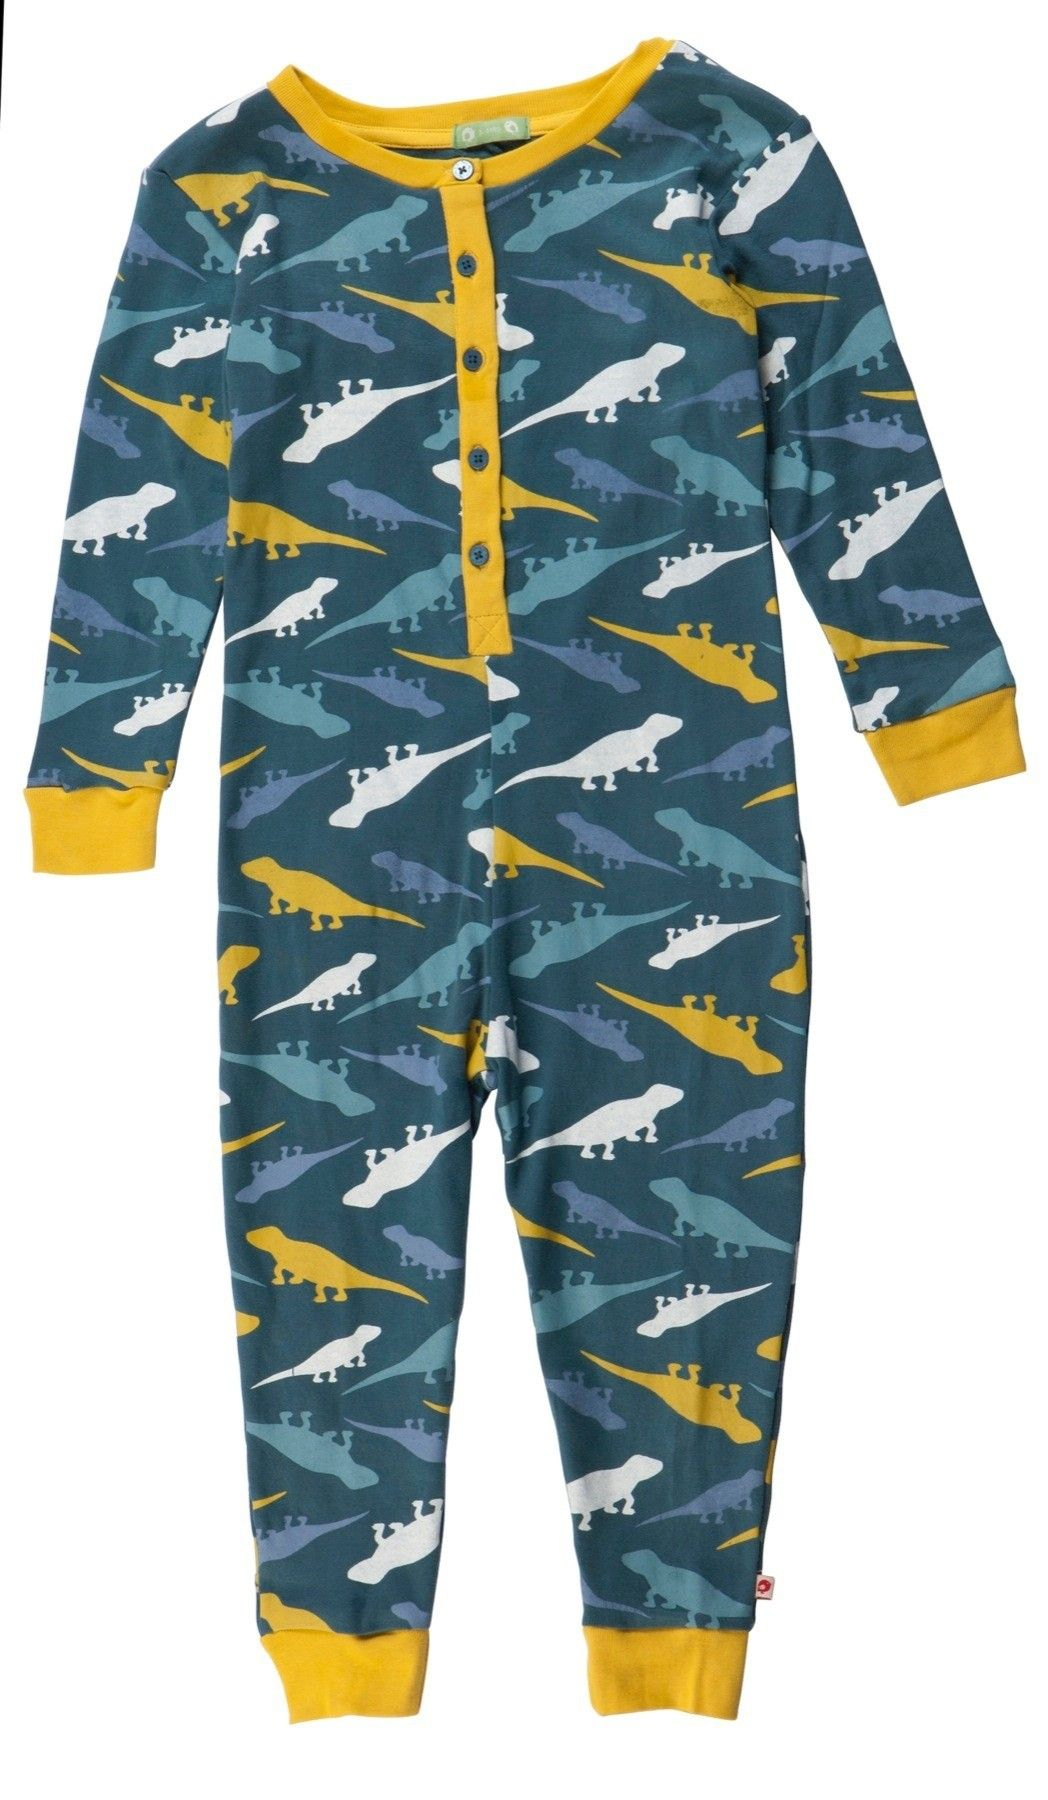 330584967384 Onesie - Lizard available in sizes 3-4 years upto 9-10 years - RRP ...